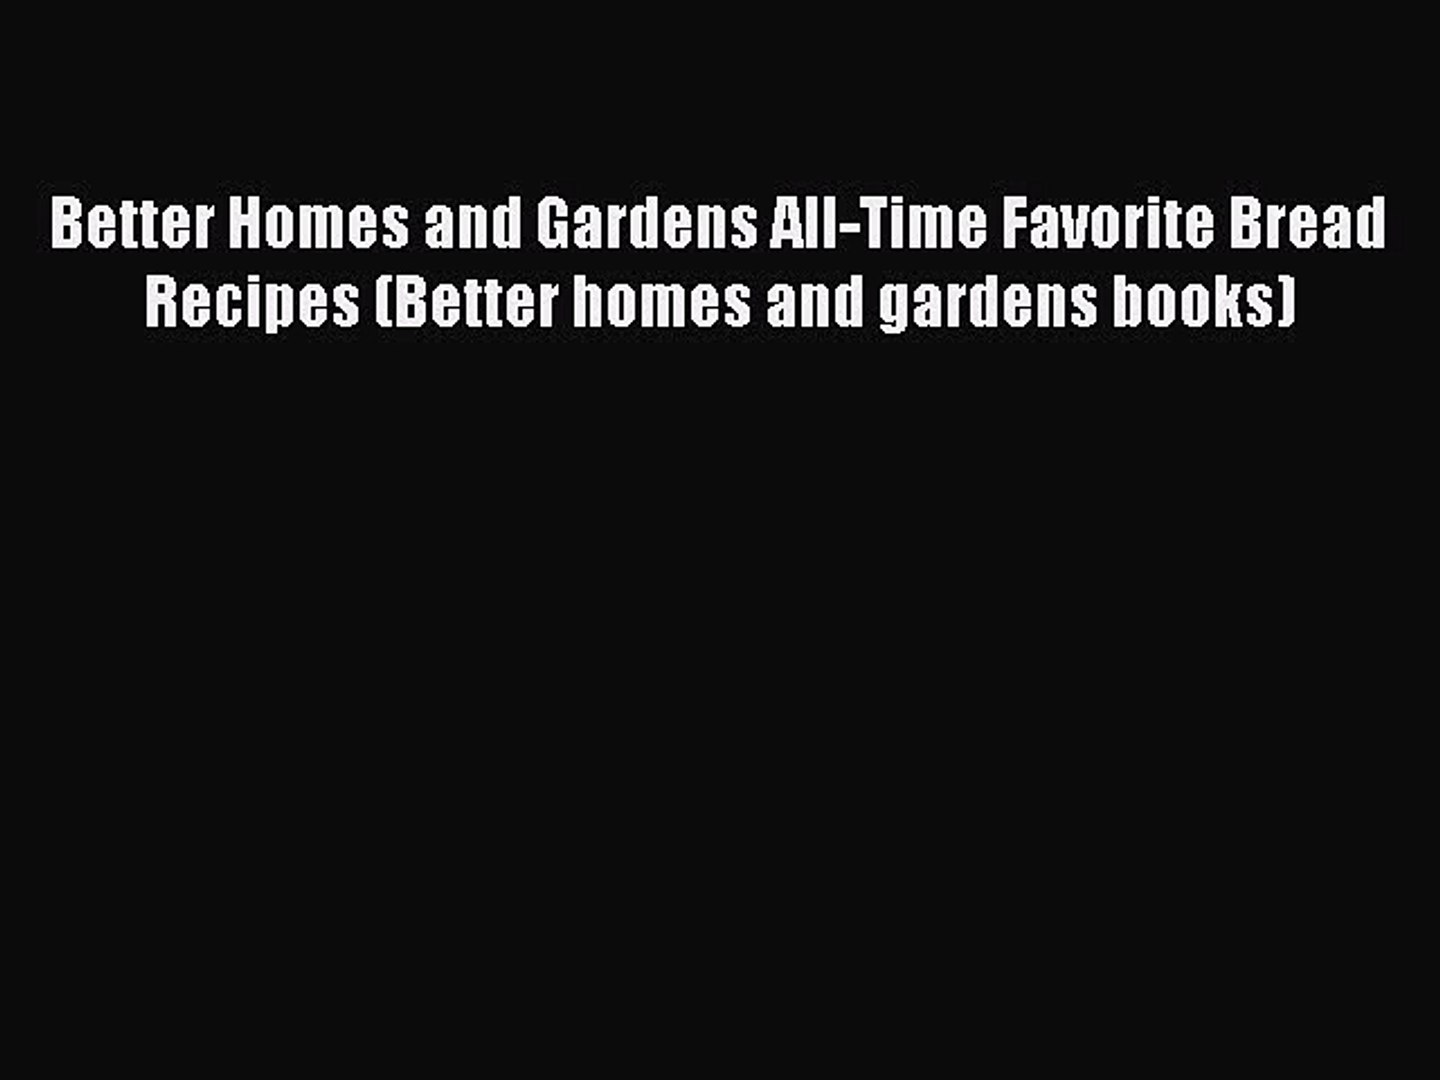 [PDF] Better Homes and Gardens All-Time Favorite Bread Recipes (Better homes and gardens books)